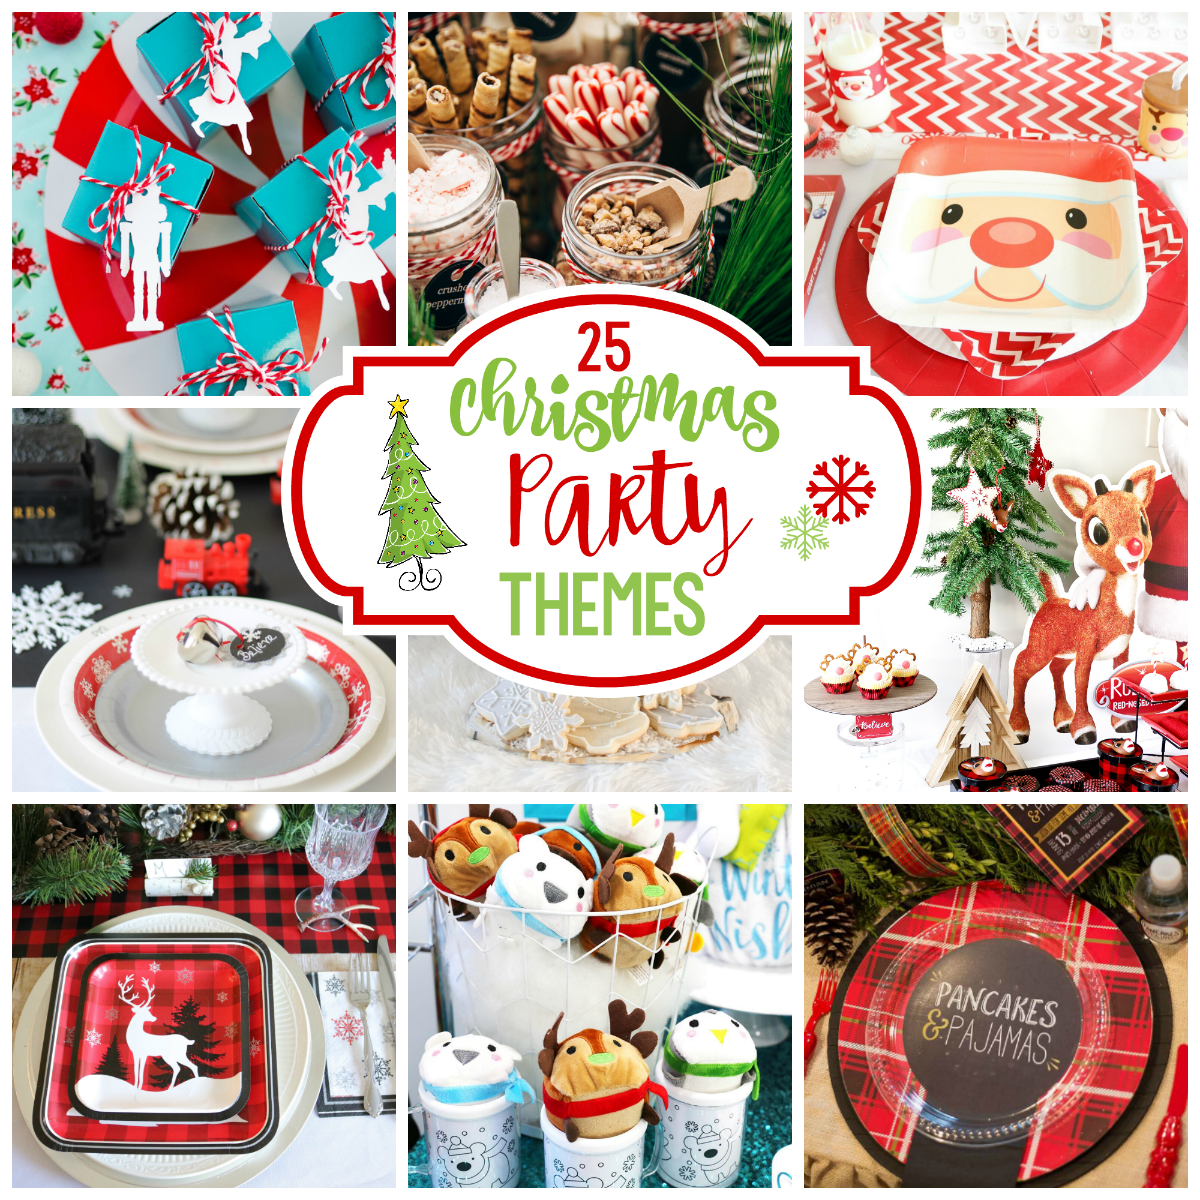 Christmas Party Theme Ideas For Adults Part - 39: Christmas Party Theme Ideas